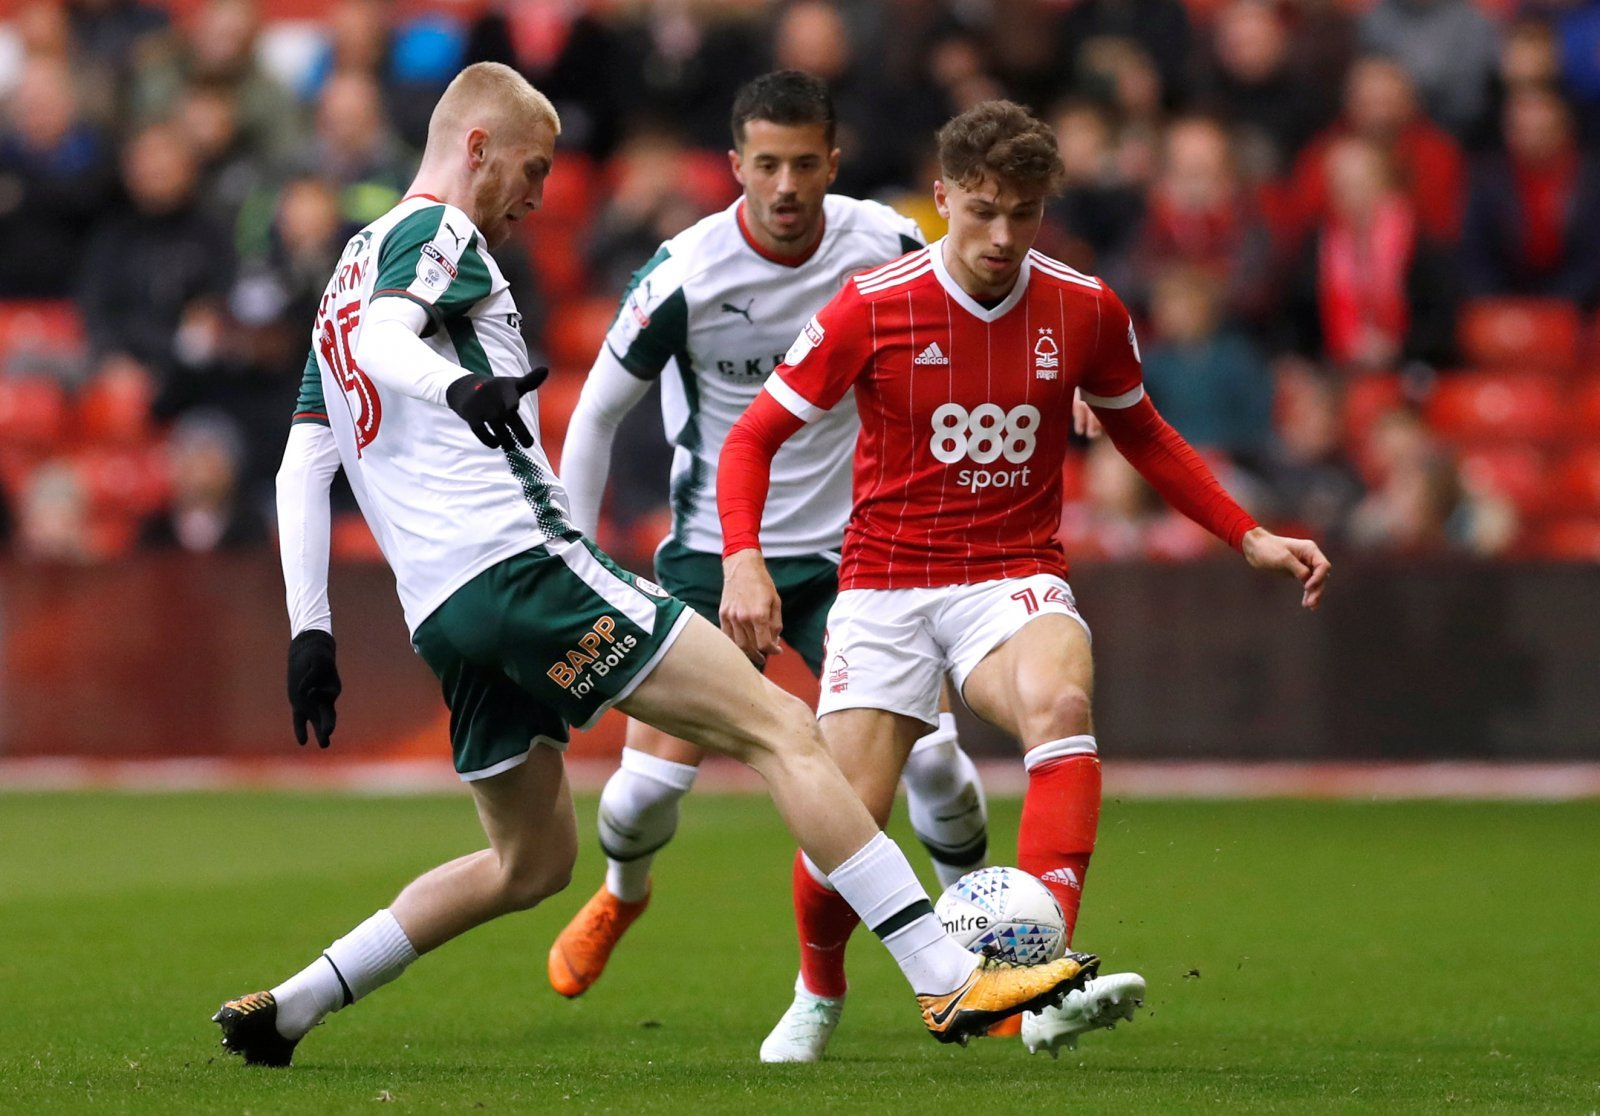 Forest fans praise Cash heroics on first start of the season